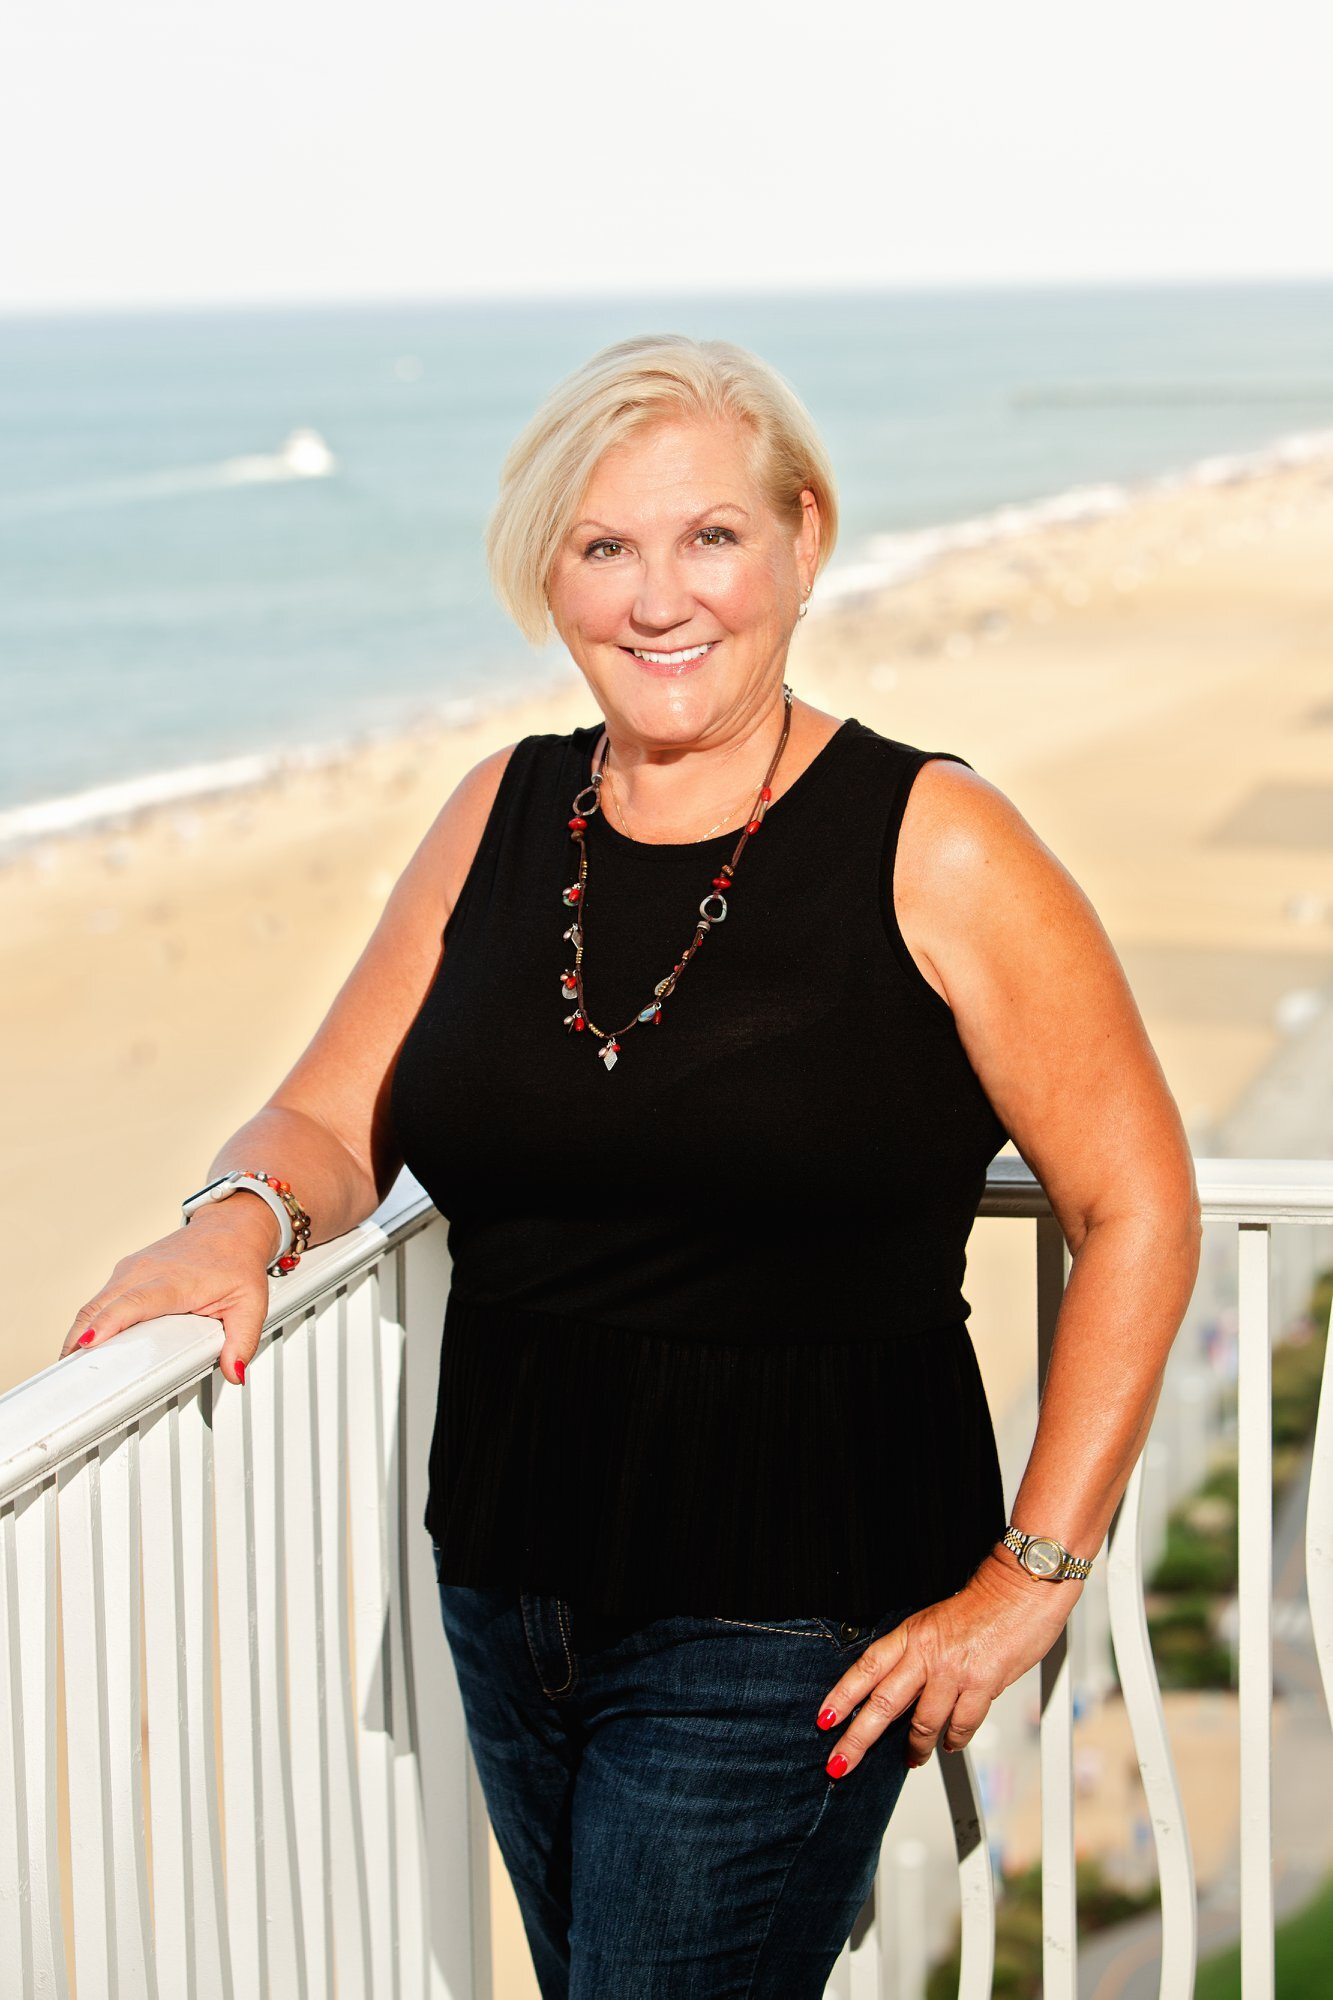 Are you SO ready to feel great? - I can show you how to THRIVE spiritually, physically, and relationally! CLICK HERE TO FIND OUT MORE.